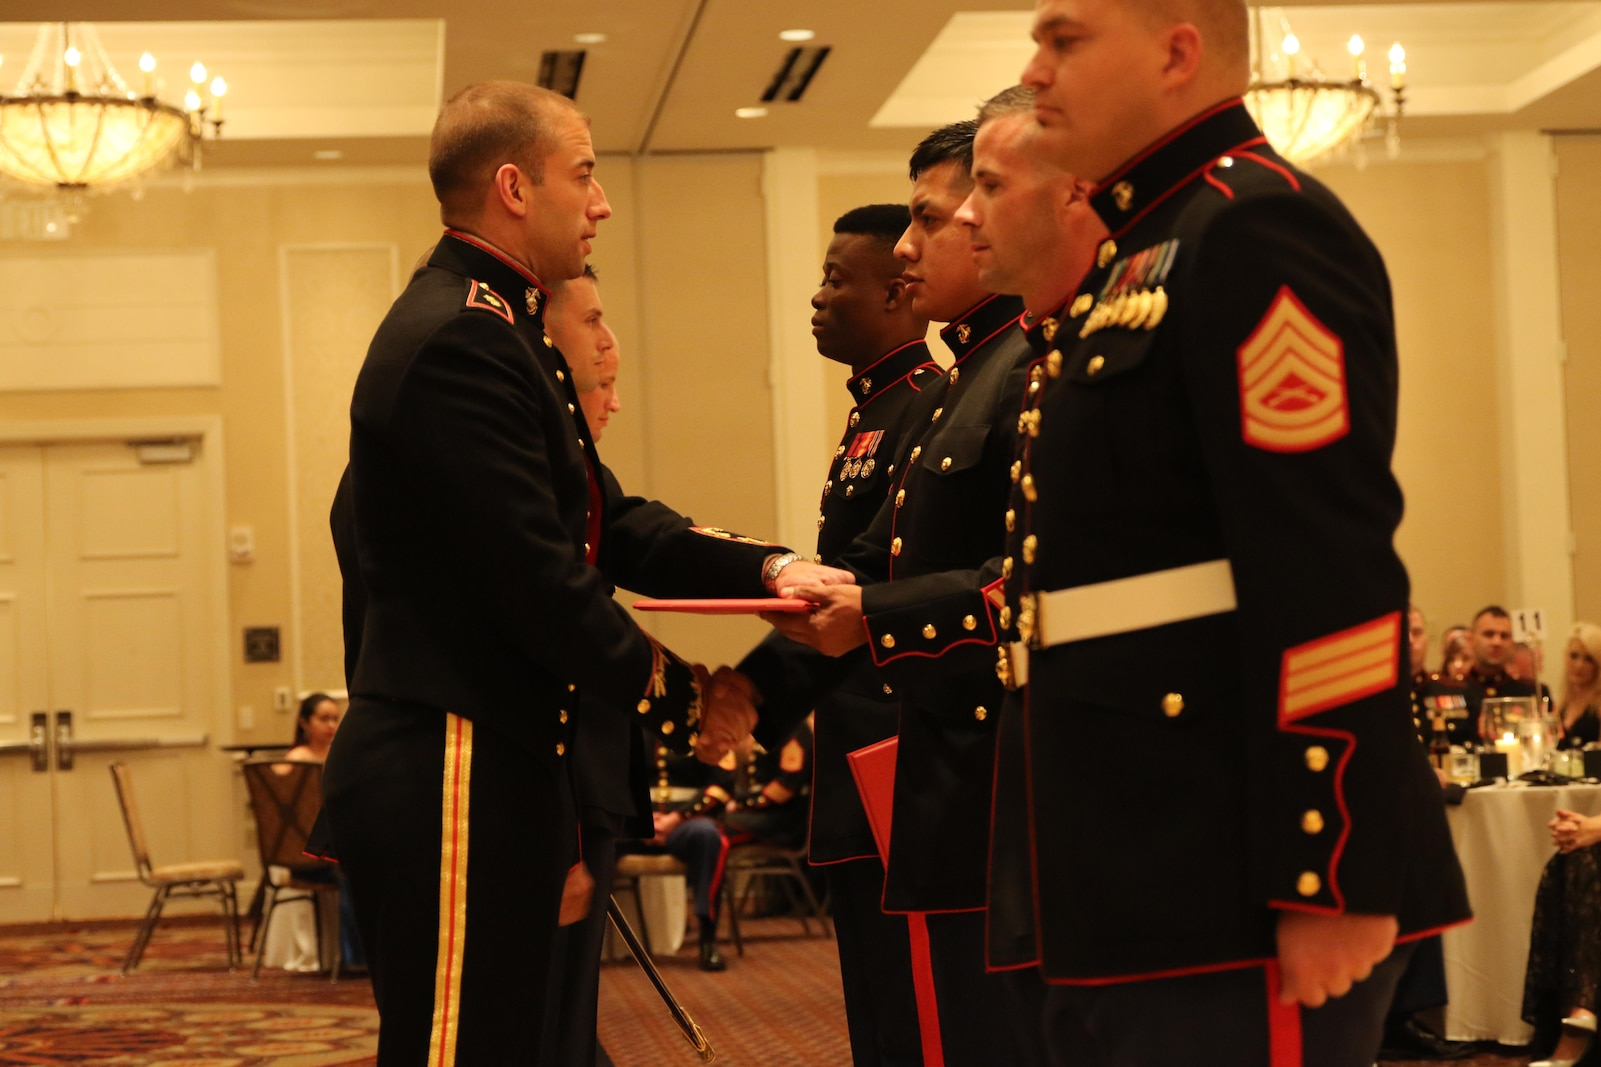 Sgt. Domingo Hernandez receives the award for Recruiter of the Year for Recruiting Station Oklahoma City before the beginning of the Marine Corps Ball.   Hernandez has been moved from being a recruiter on production to being a Staff NCOIC for Recruiting Substation Midwest City.